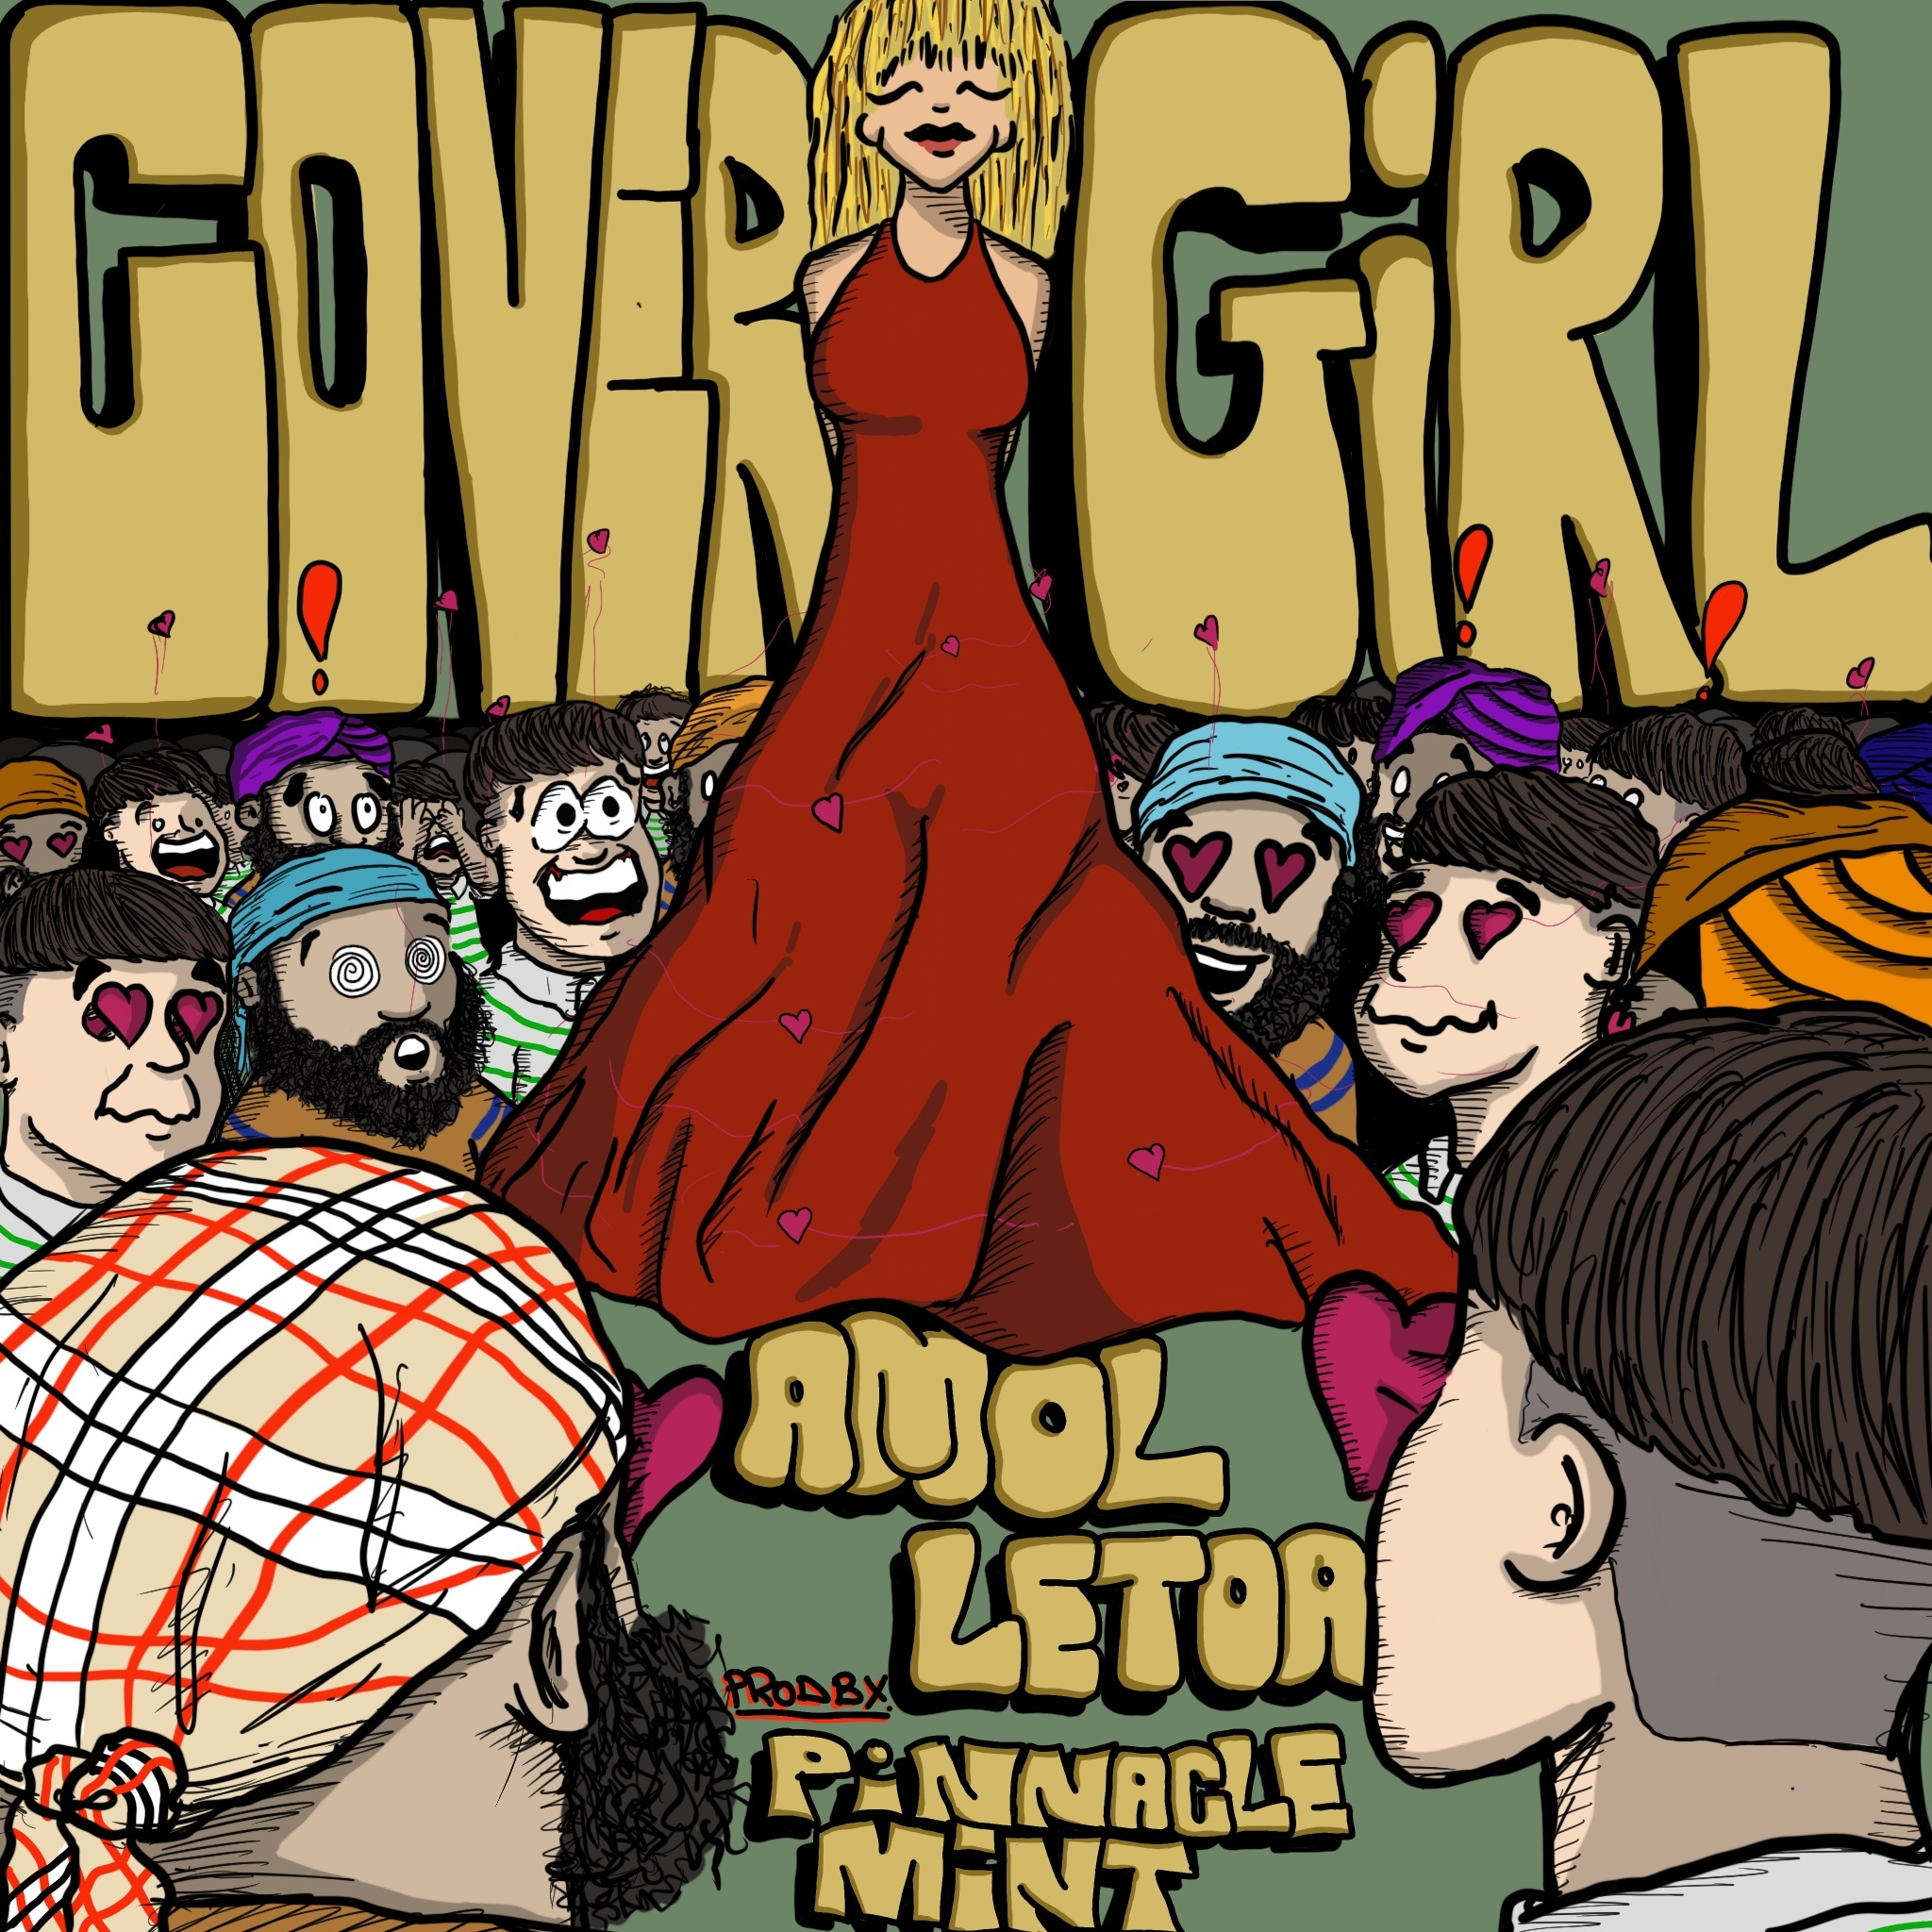 AMOL & LETOA TEAM UP ON NEW RAP SINGLE 'COVER GIRL' SINGLE OUT NOW